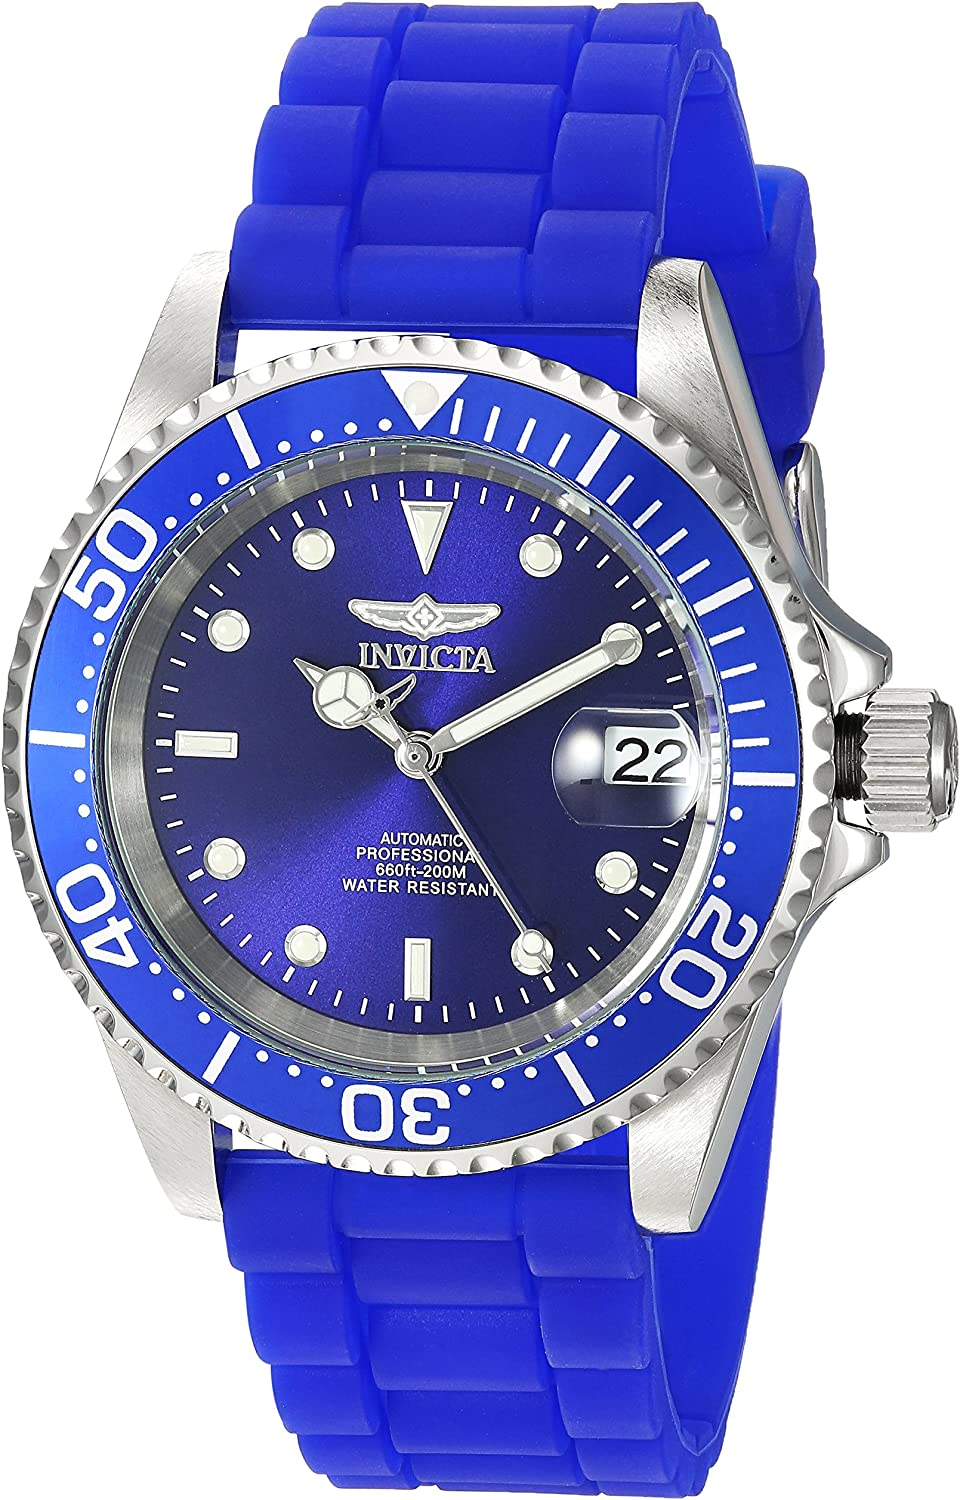 Invicta Men s Pro Diver Stainless Steel Automatic-self-Wind Diving Watch with Silicone Strap, Blue, 20 Model 23679